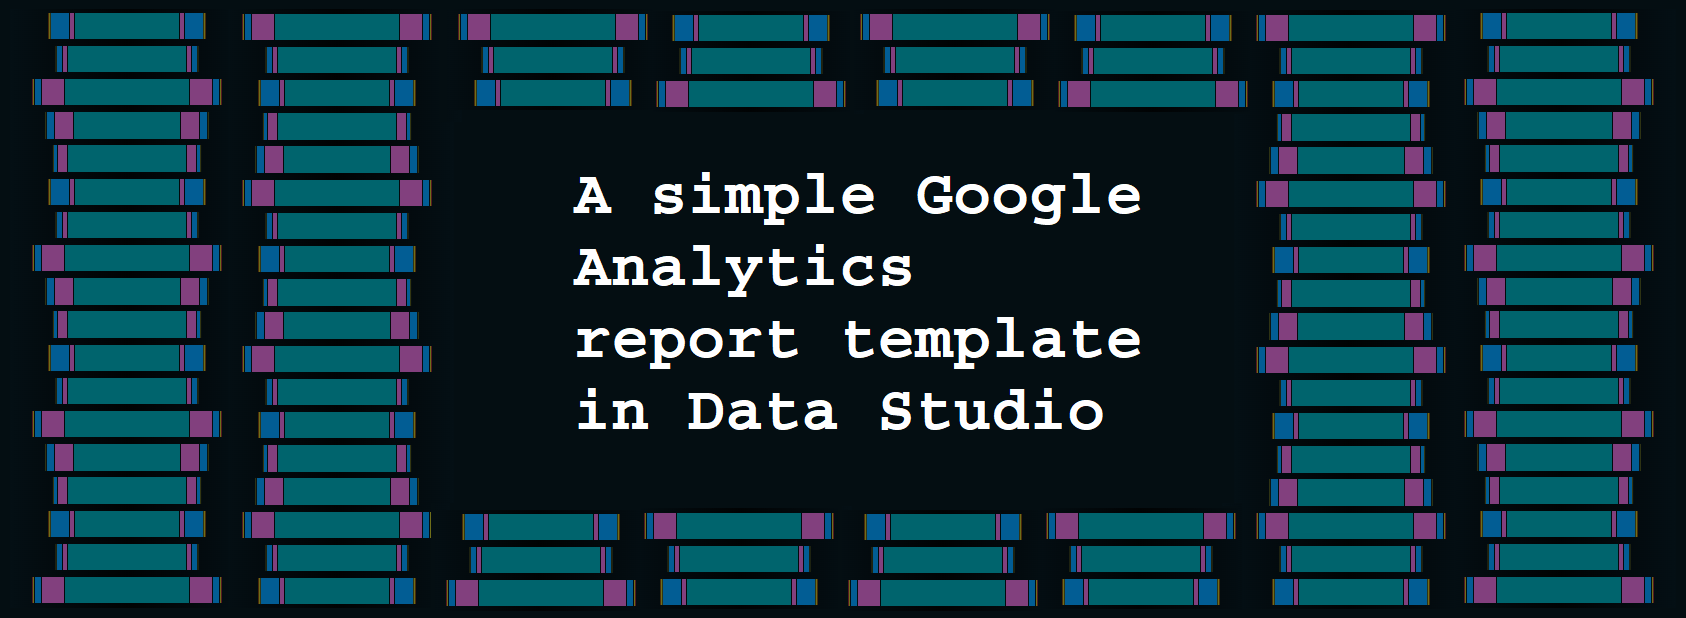 A simple Google Analytics report template in Data Studio